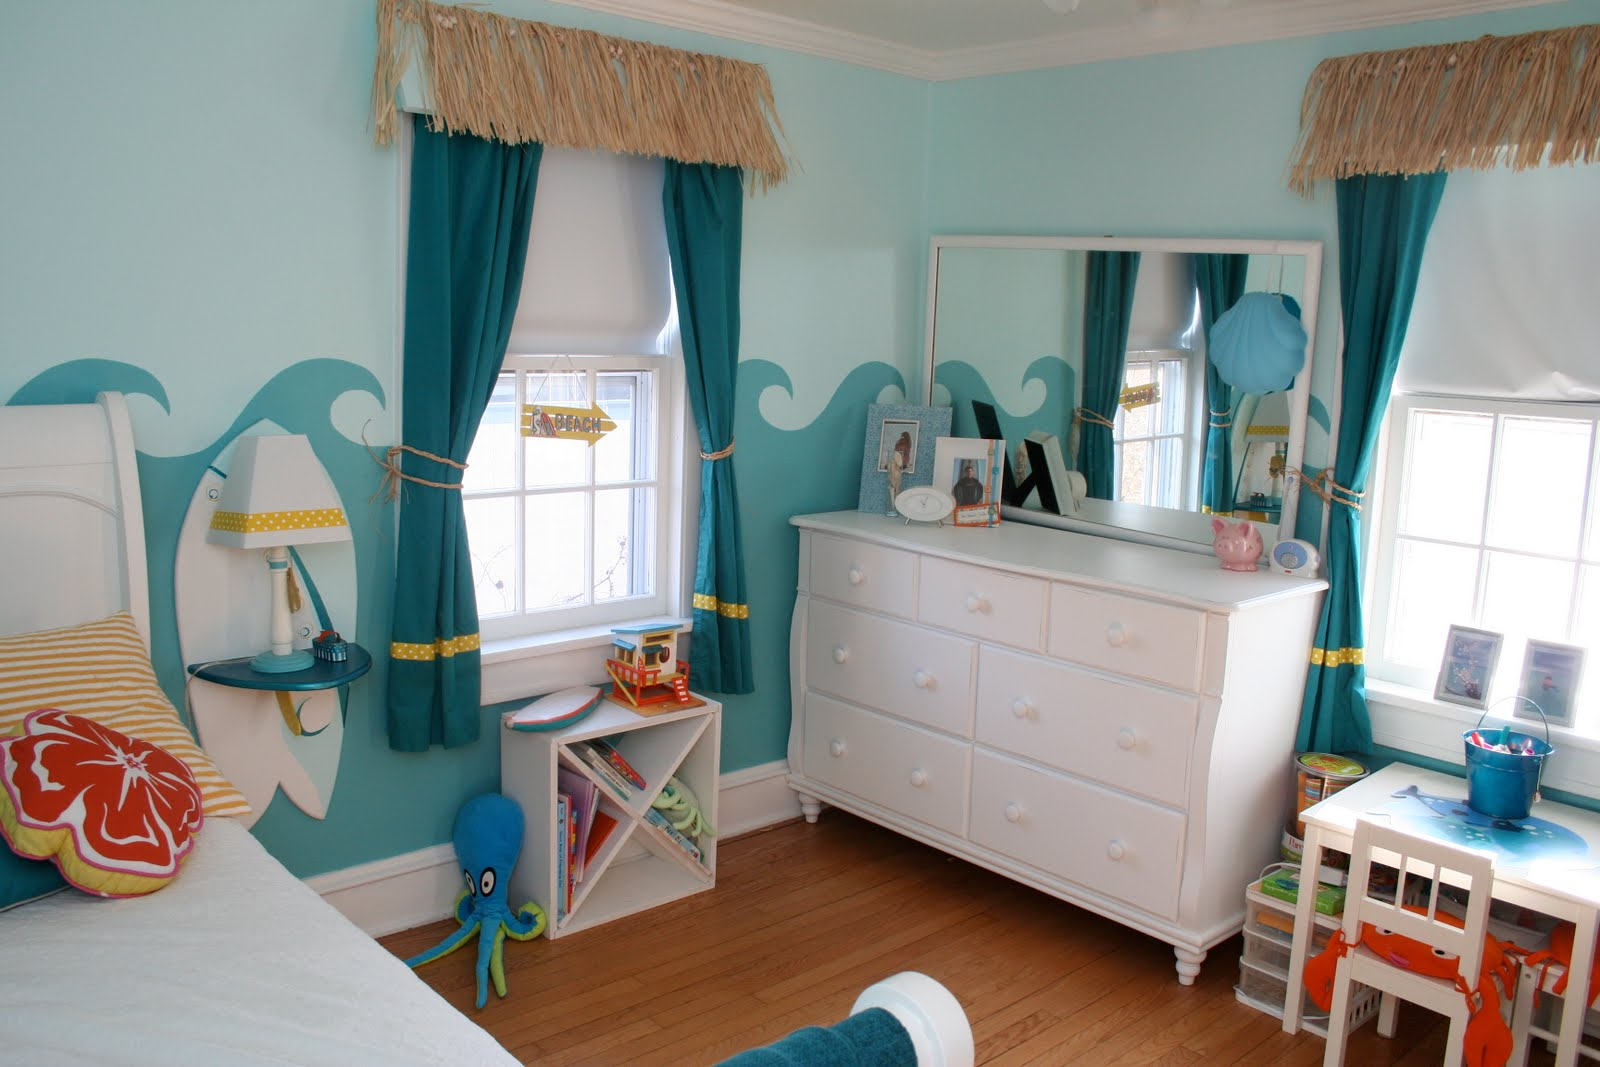 Little girl 39 s surfer room design dazzle - Girls room ideas ...